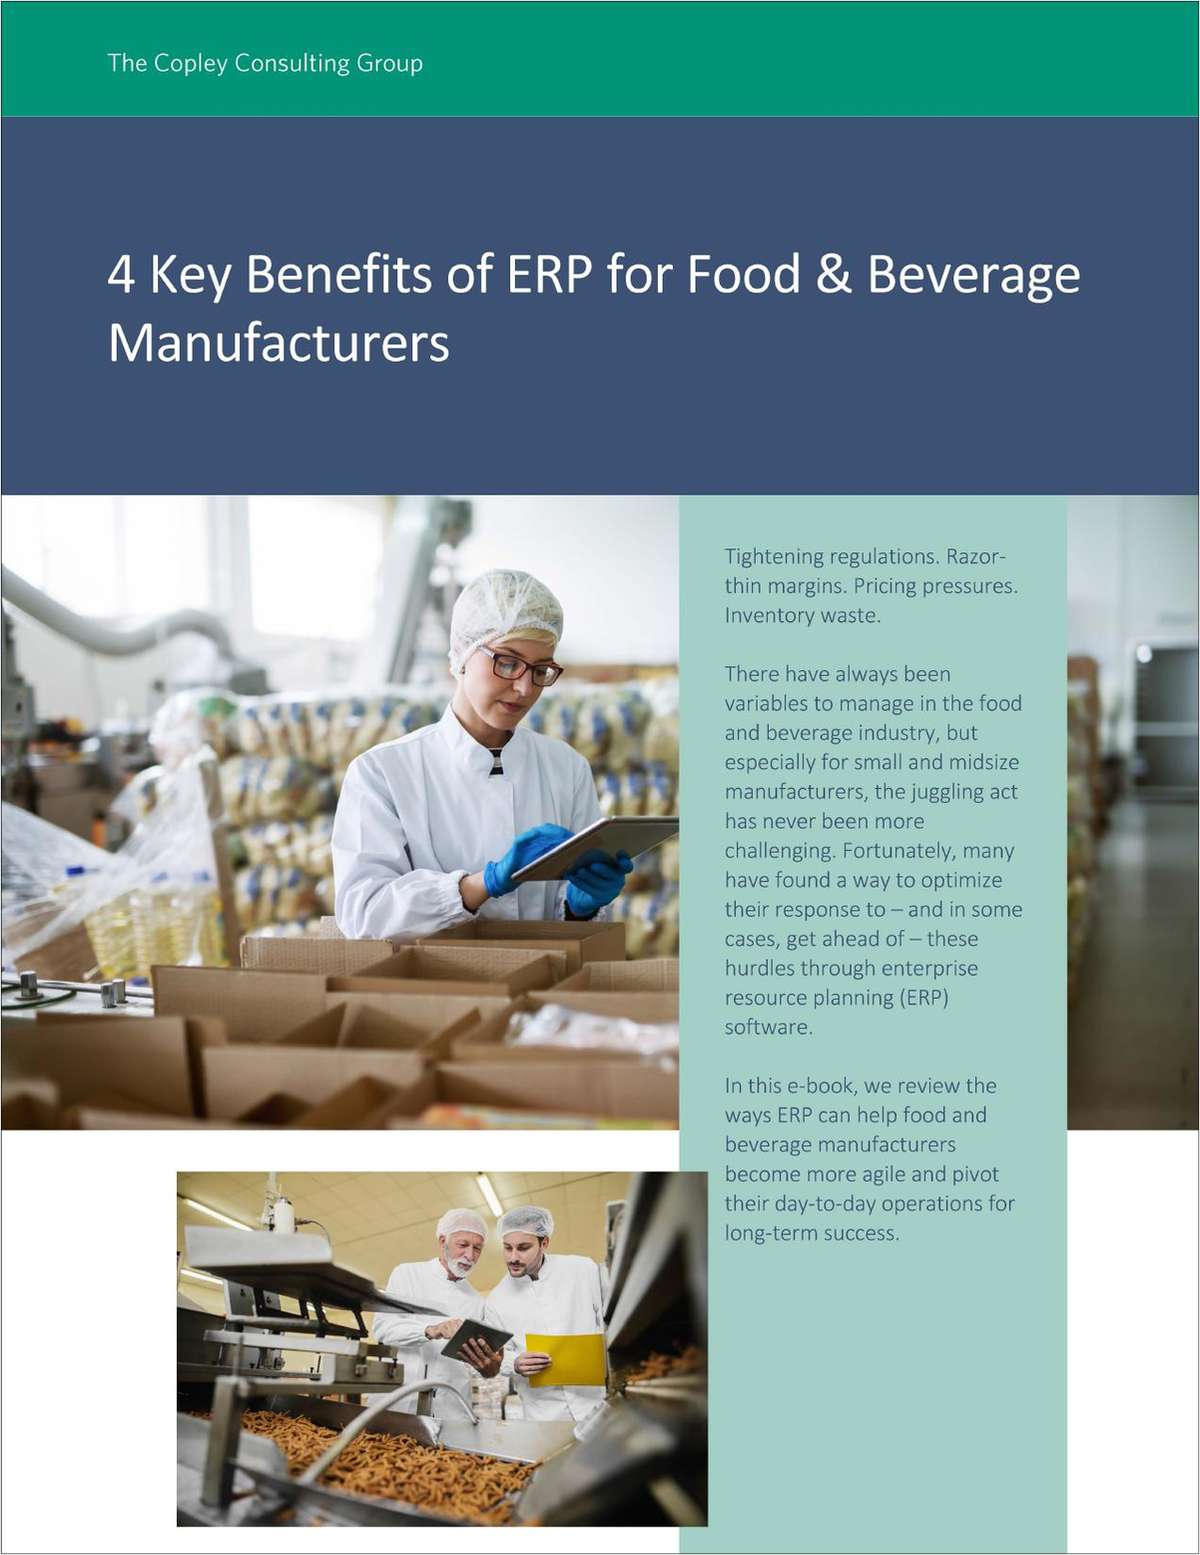 4 Benefits of ERP for Food & Beverage Manufacturers